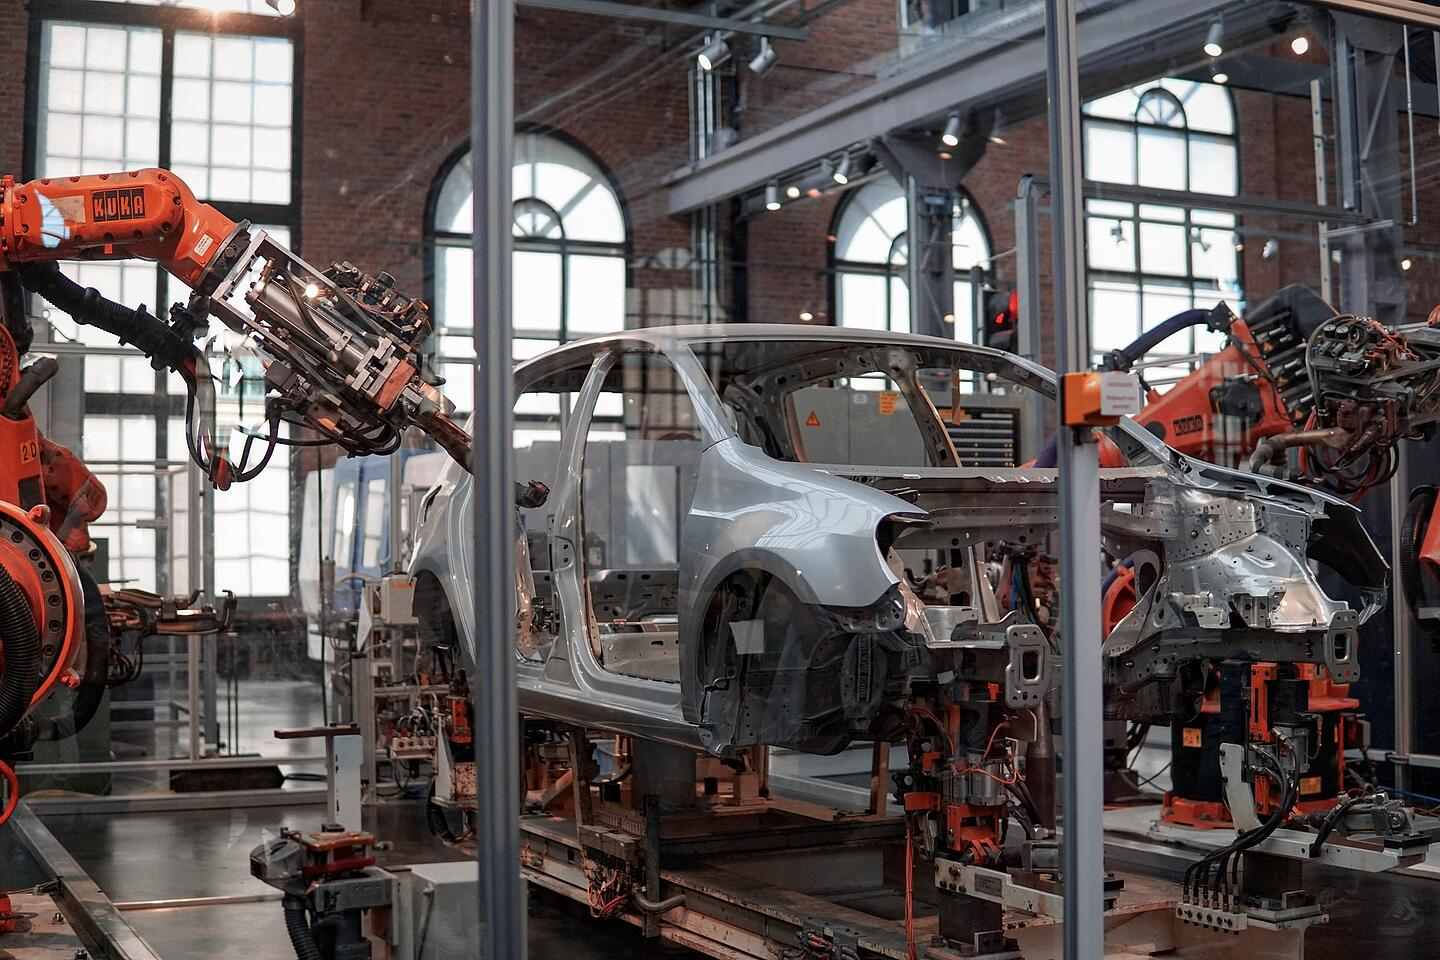 A car manufacturing robot in an industrial environment